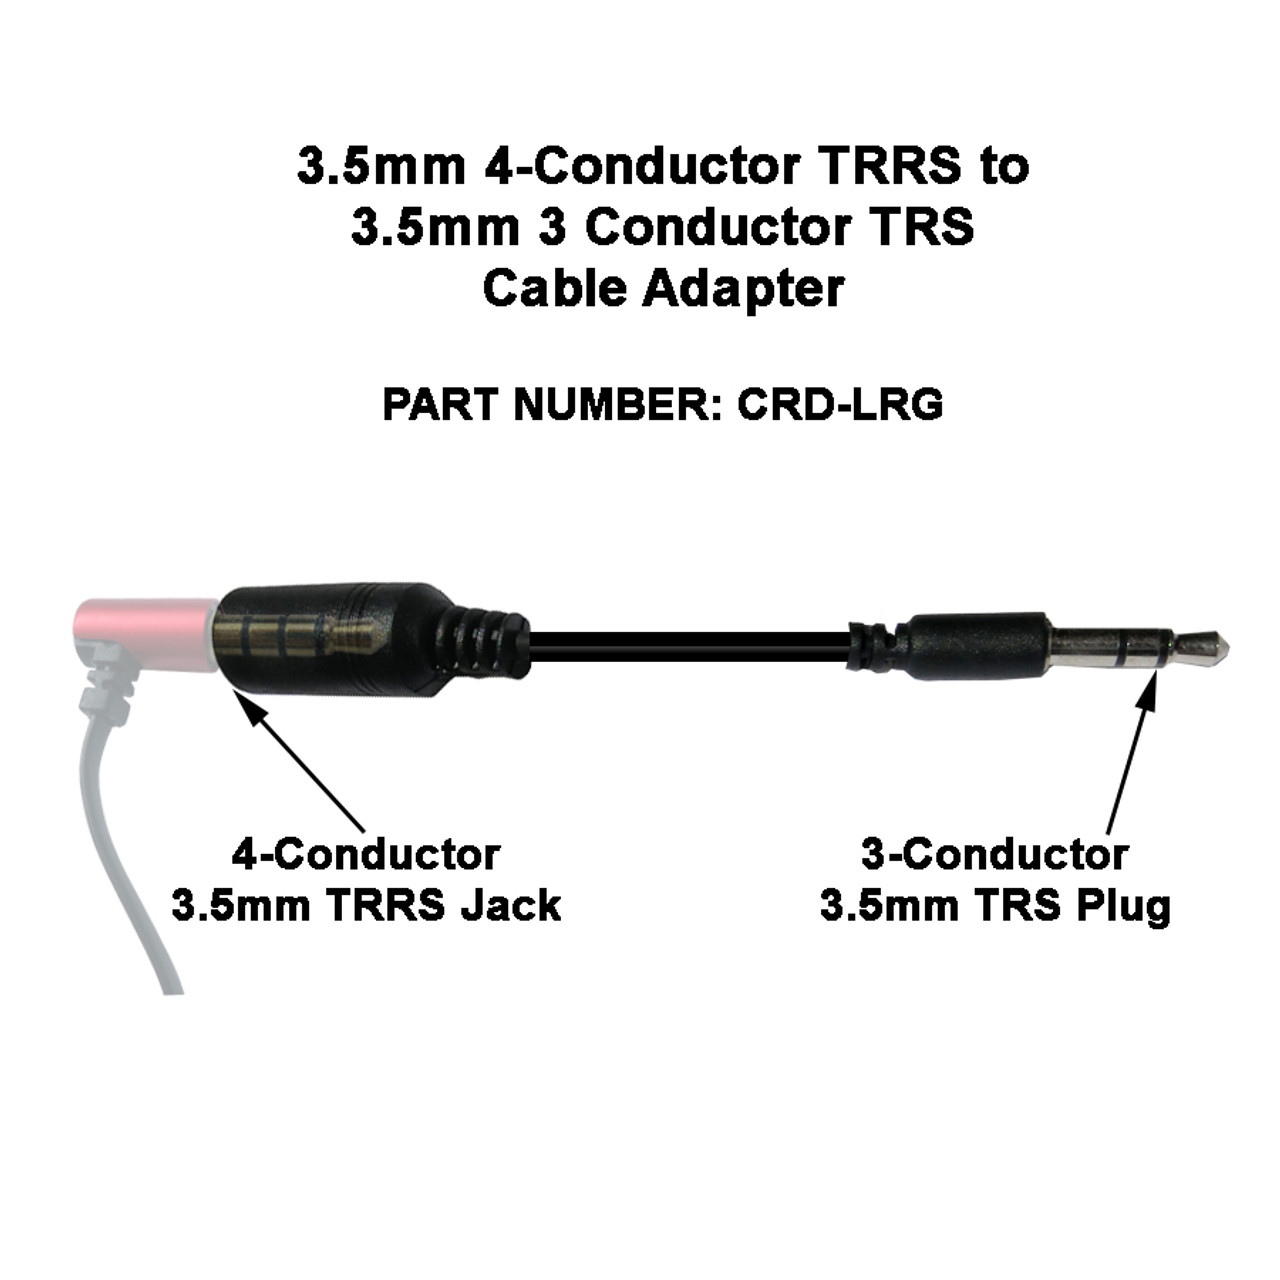 audio adapter 3.5mm 4-cond female jack with cord going to 3.5mm 3-cond male  plug  scan sound